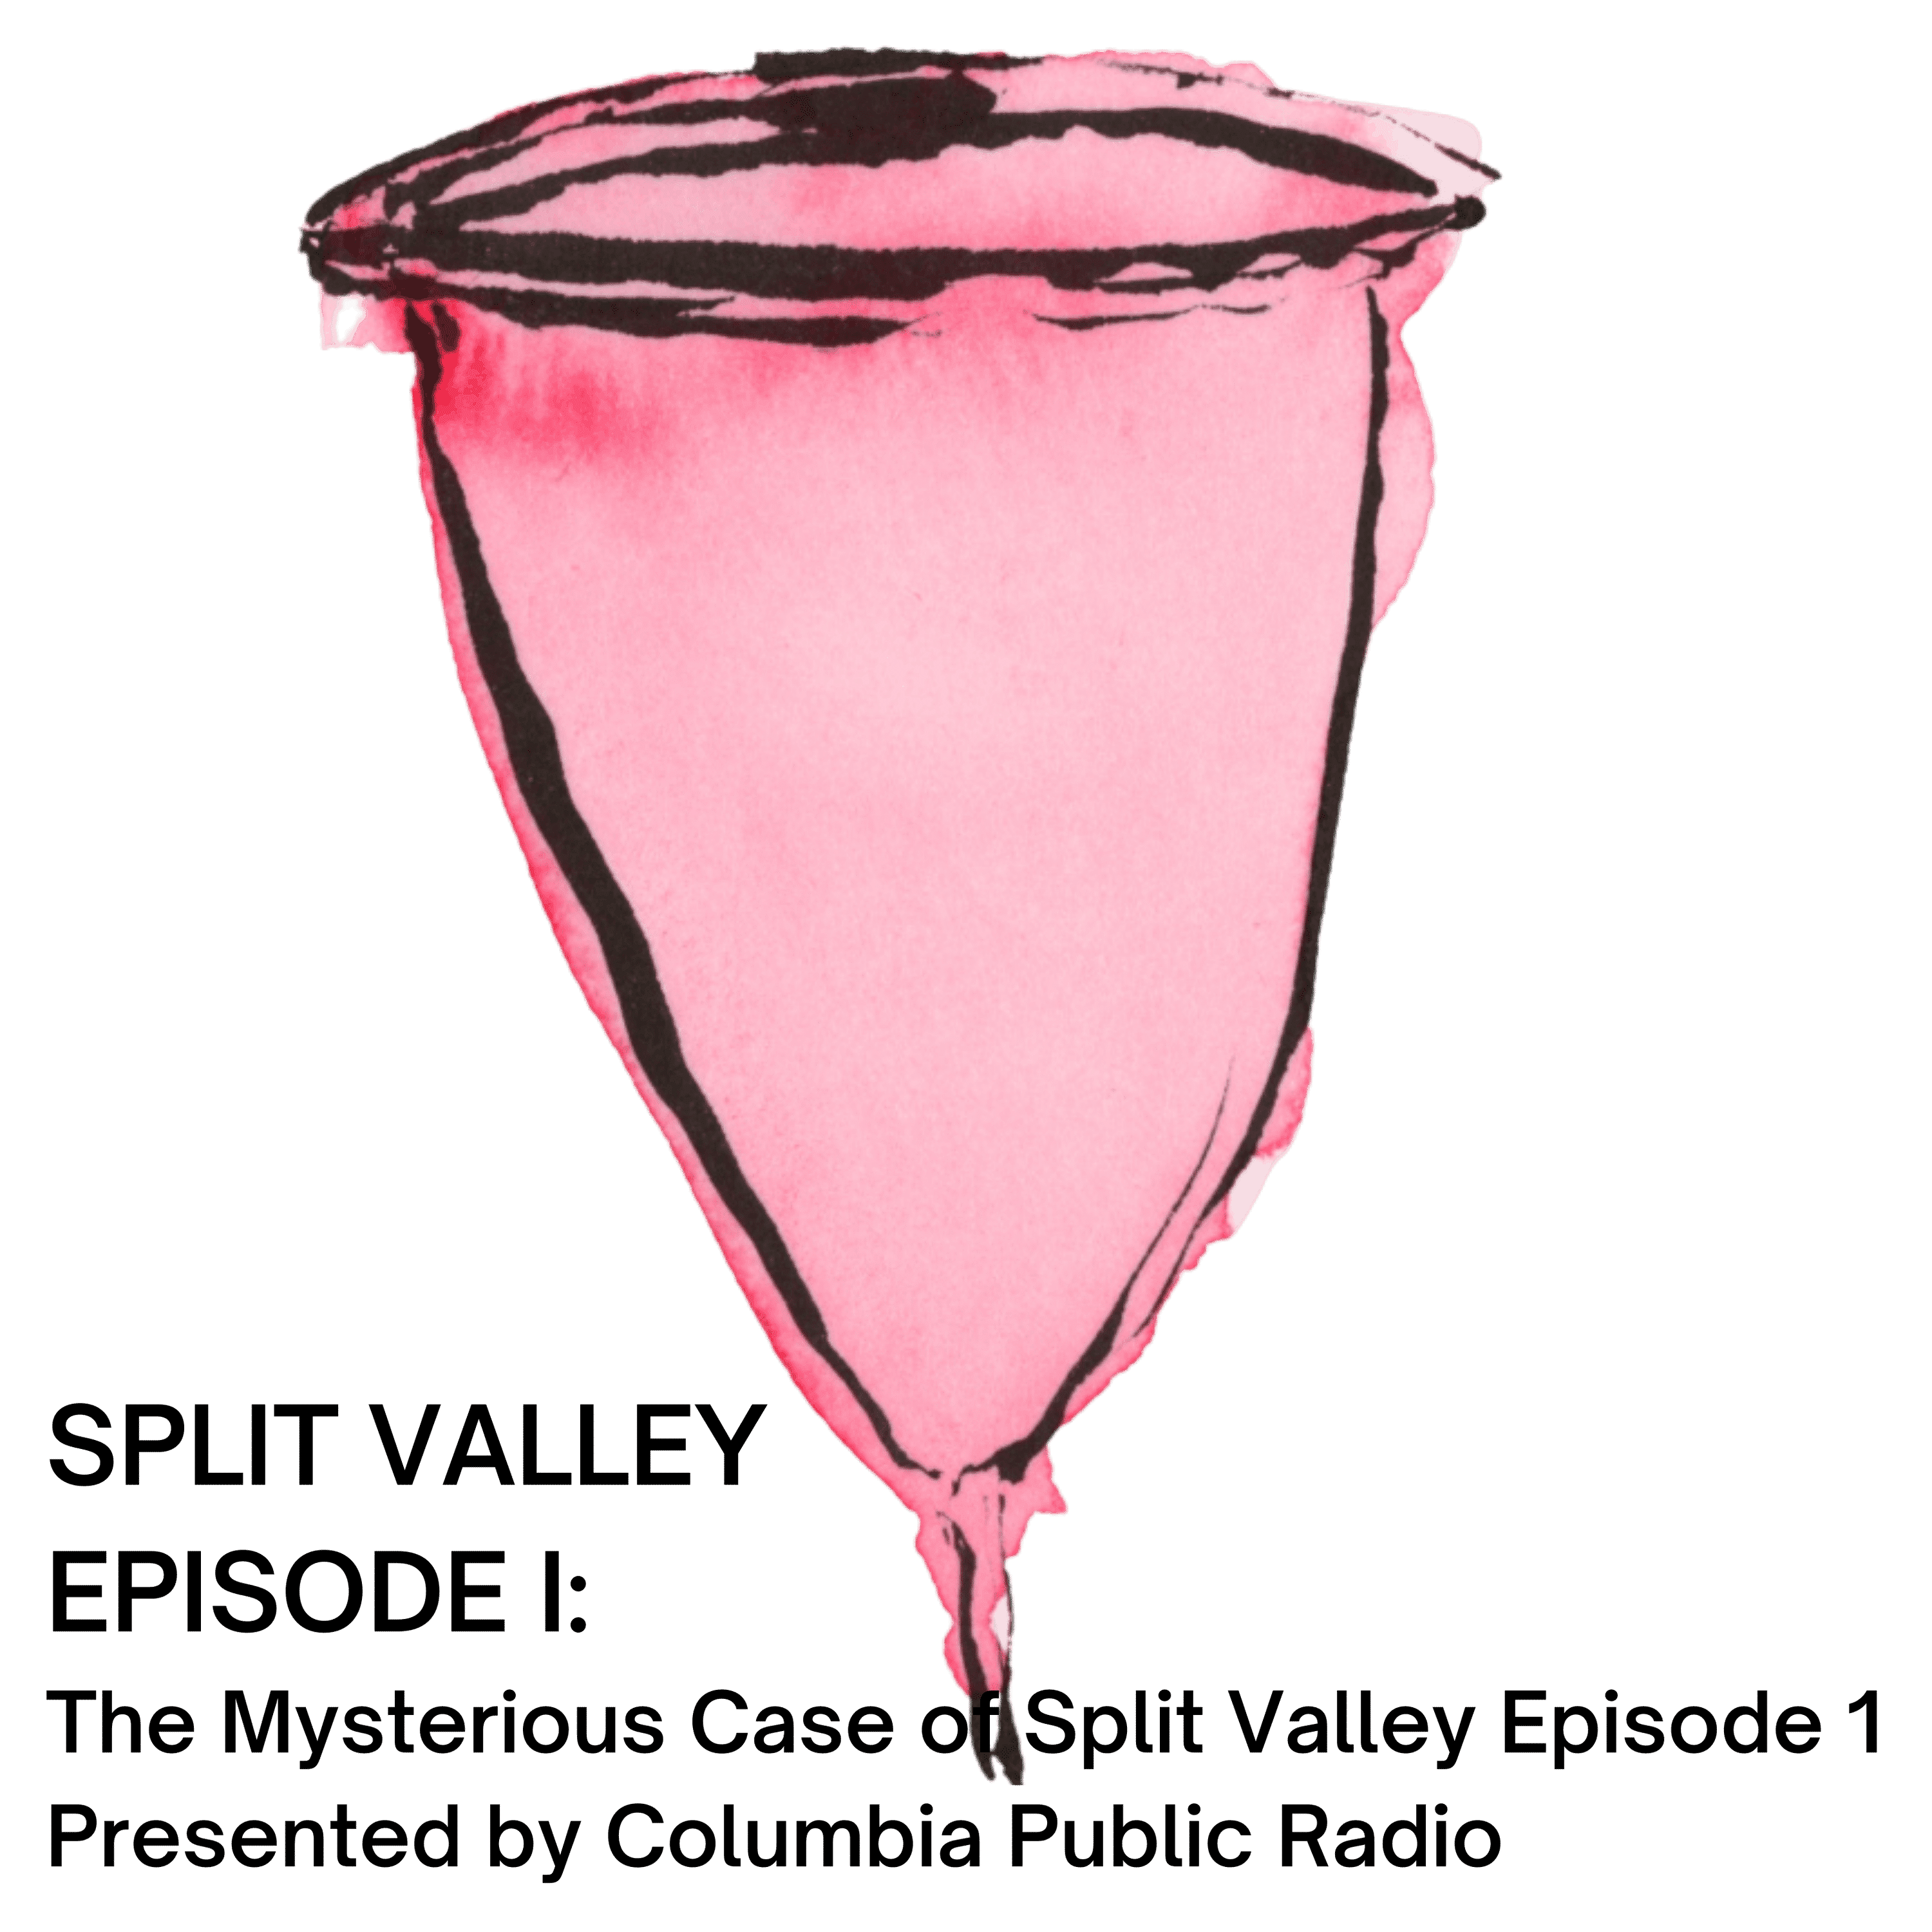 Episode I: The Mysterious Case of Split Valley Episode 1 Presented by Columbia Public Radio